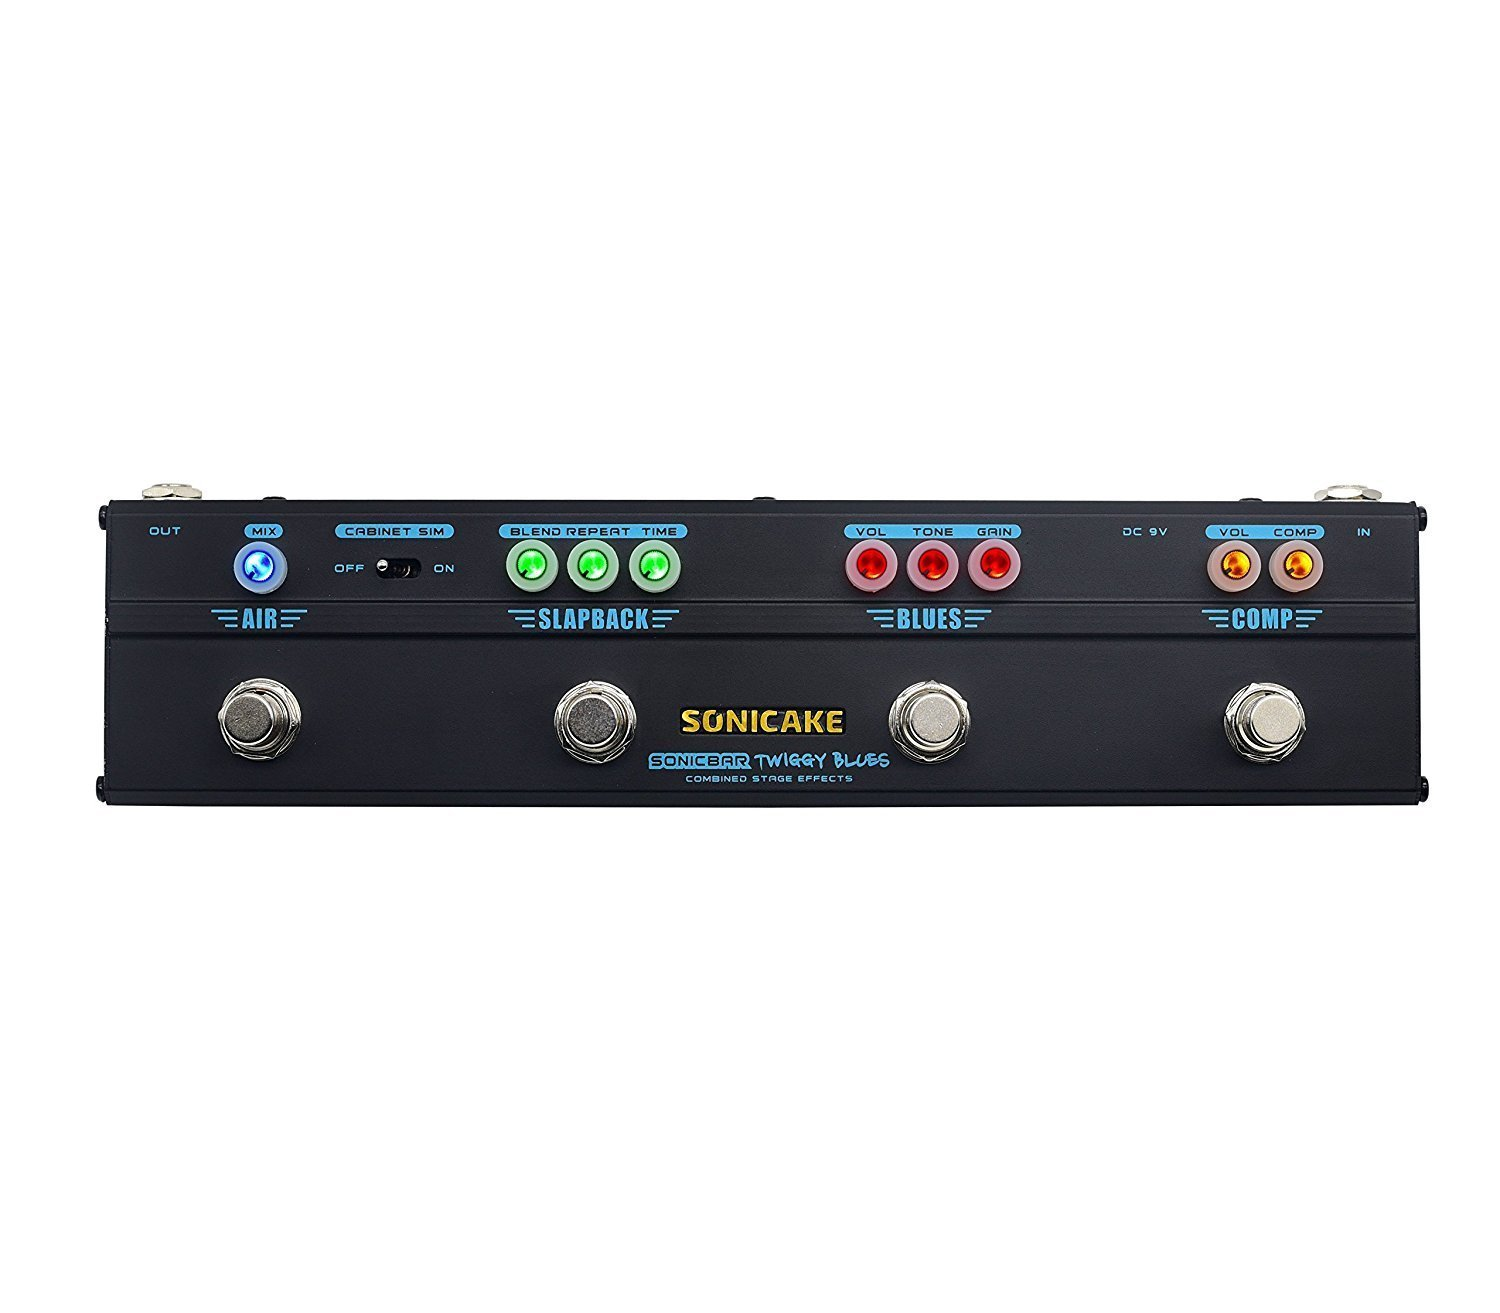 Sonicake Multi Guitar Effect Pedal Strip Sonicbar Twiggy Blues Combined Stage 4 in 1 Effect Compressor, Overdrive, Delay and reverb effect Pedal